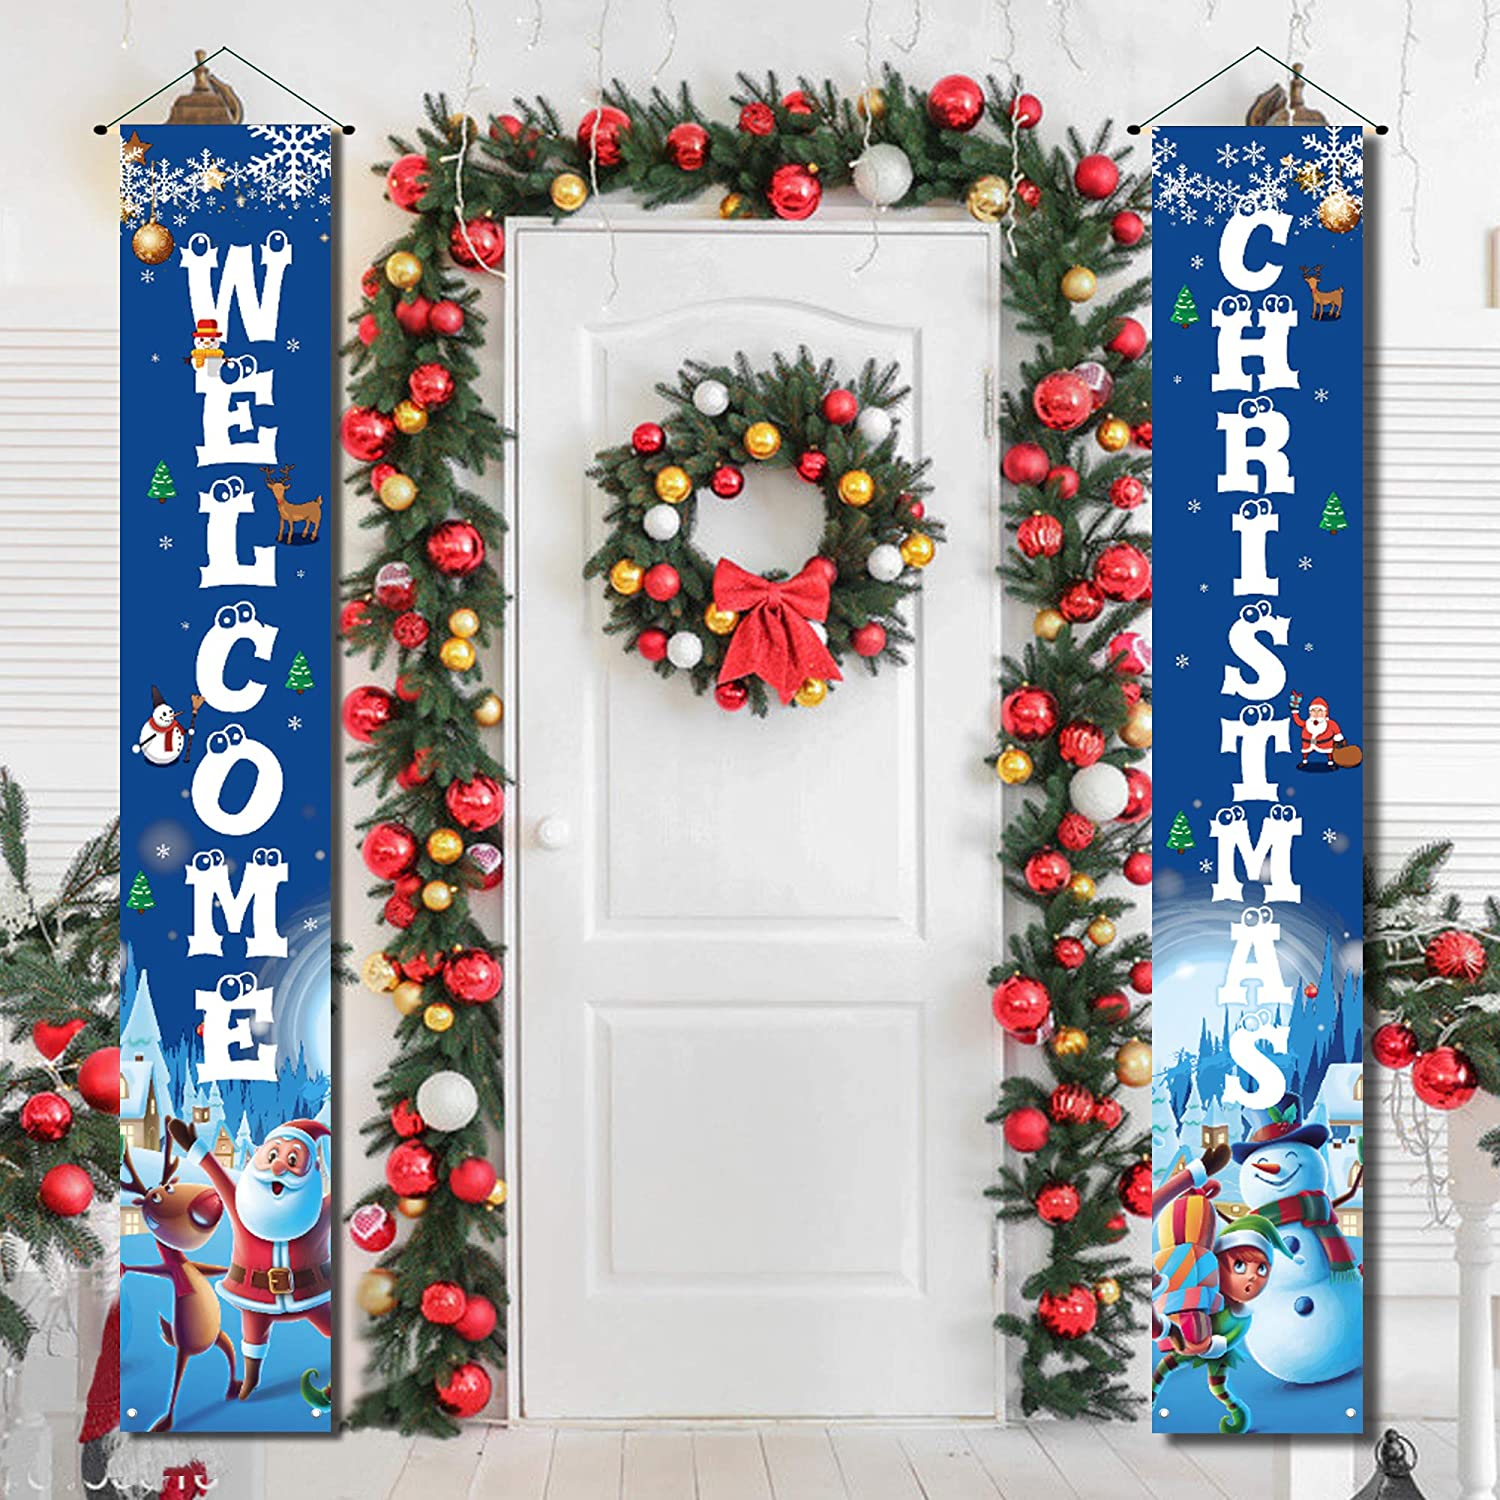 Christmas Porch Decorations for Home Merry Christmas Banner,Christmas Door Decorations Outdoor Blue Christmas Decoration Flags,Porch Welcome Christmas Signs for Front Door Hanging Decorations